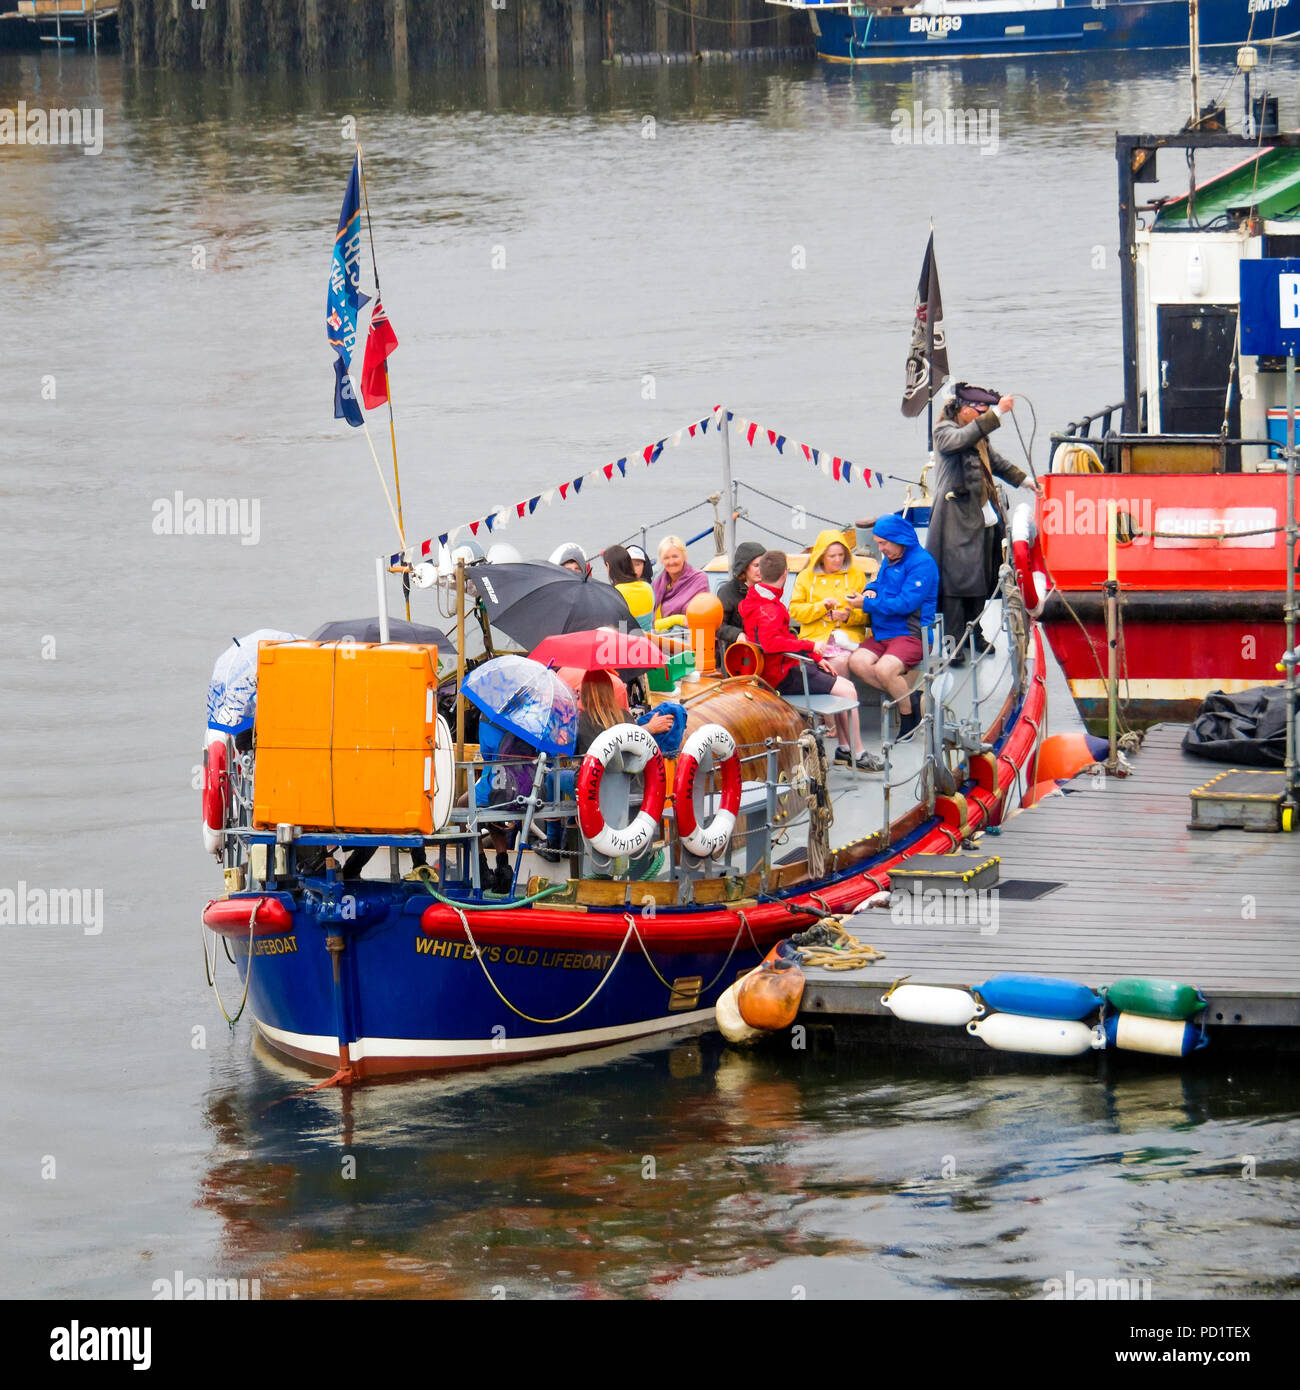 """Passengers on the old Whitby Lifeboat """"Mary Ann Hepworth"""" in Whitby harbour waiting to go on a summer pleasure trip  umbrellas up in heavy rain Stock Photo"""